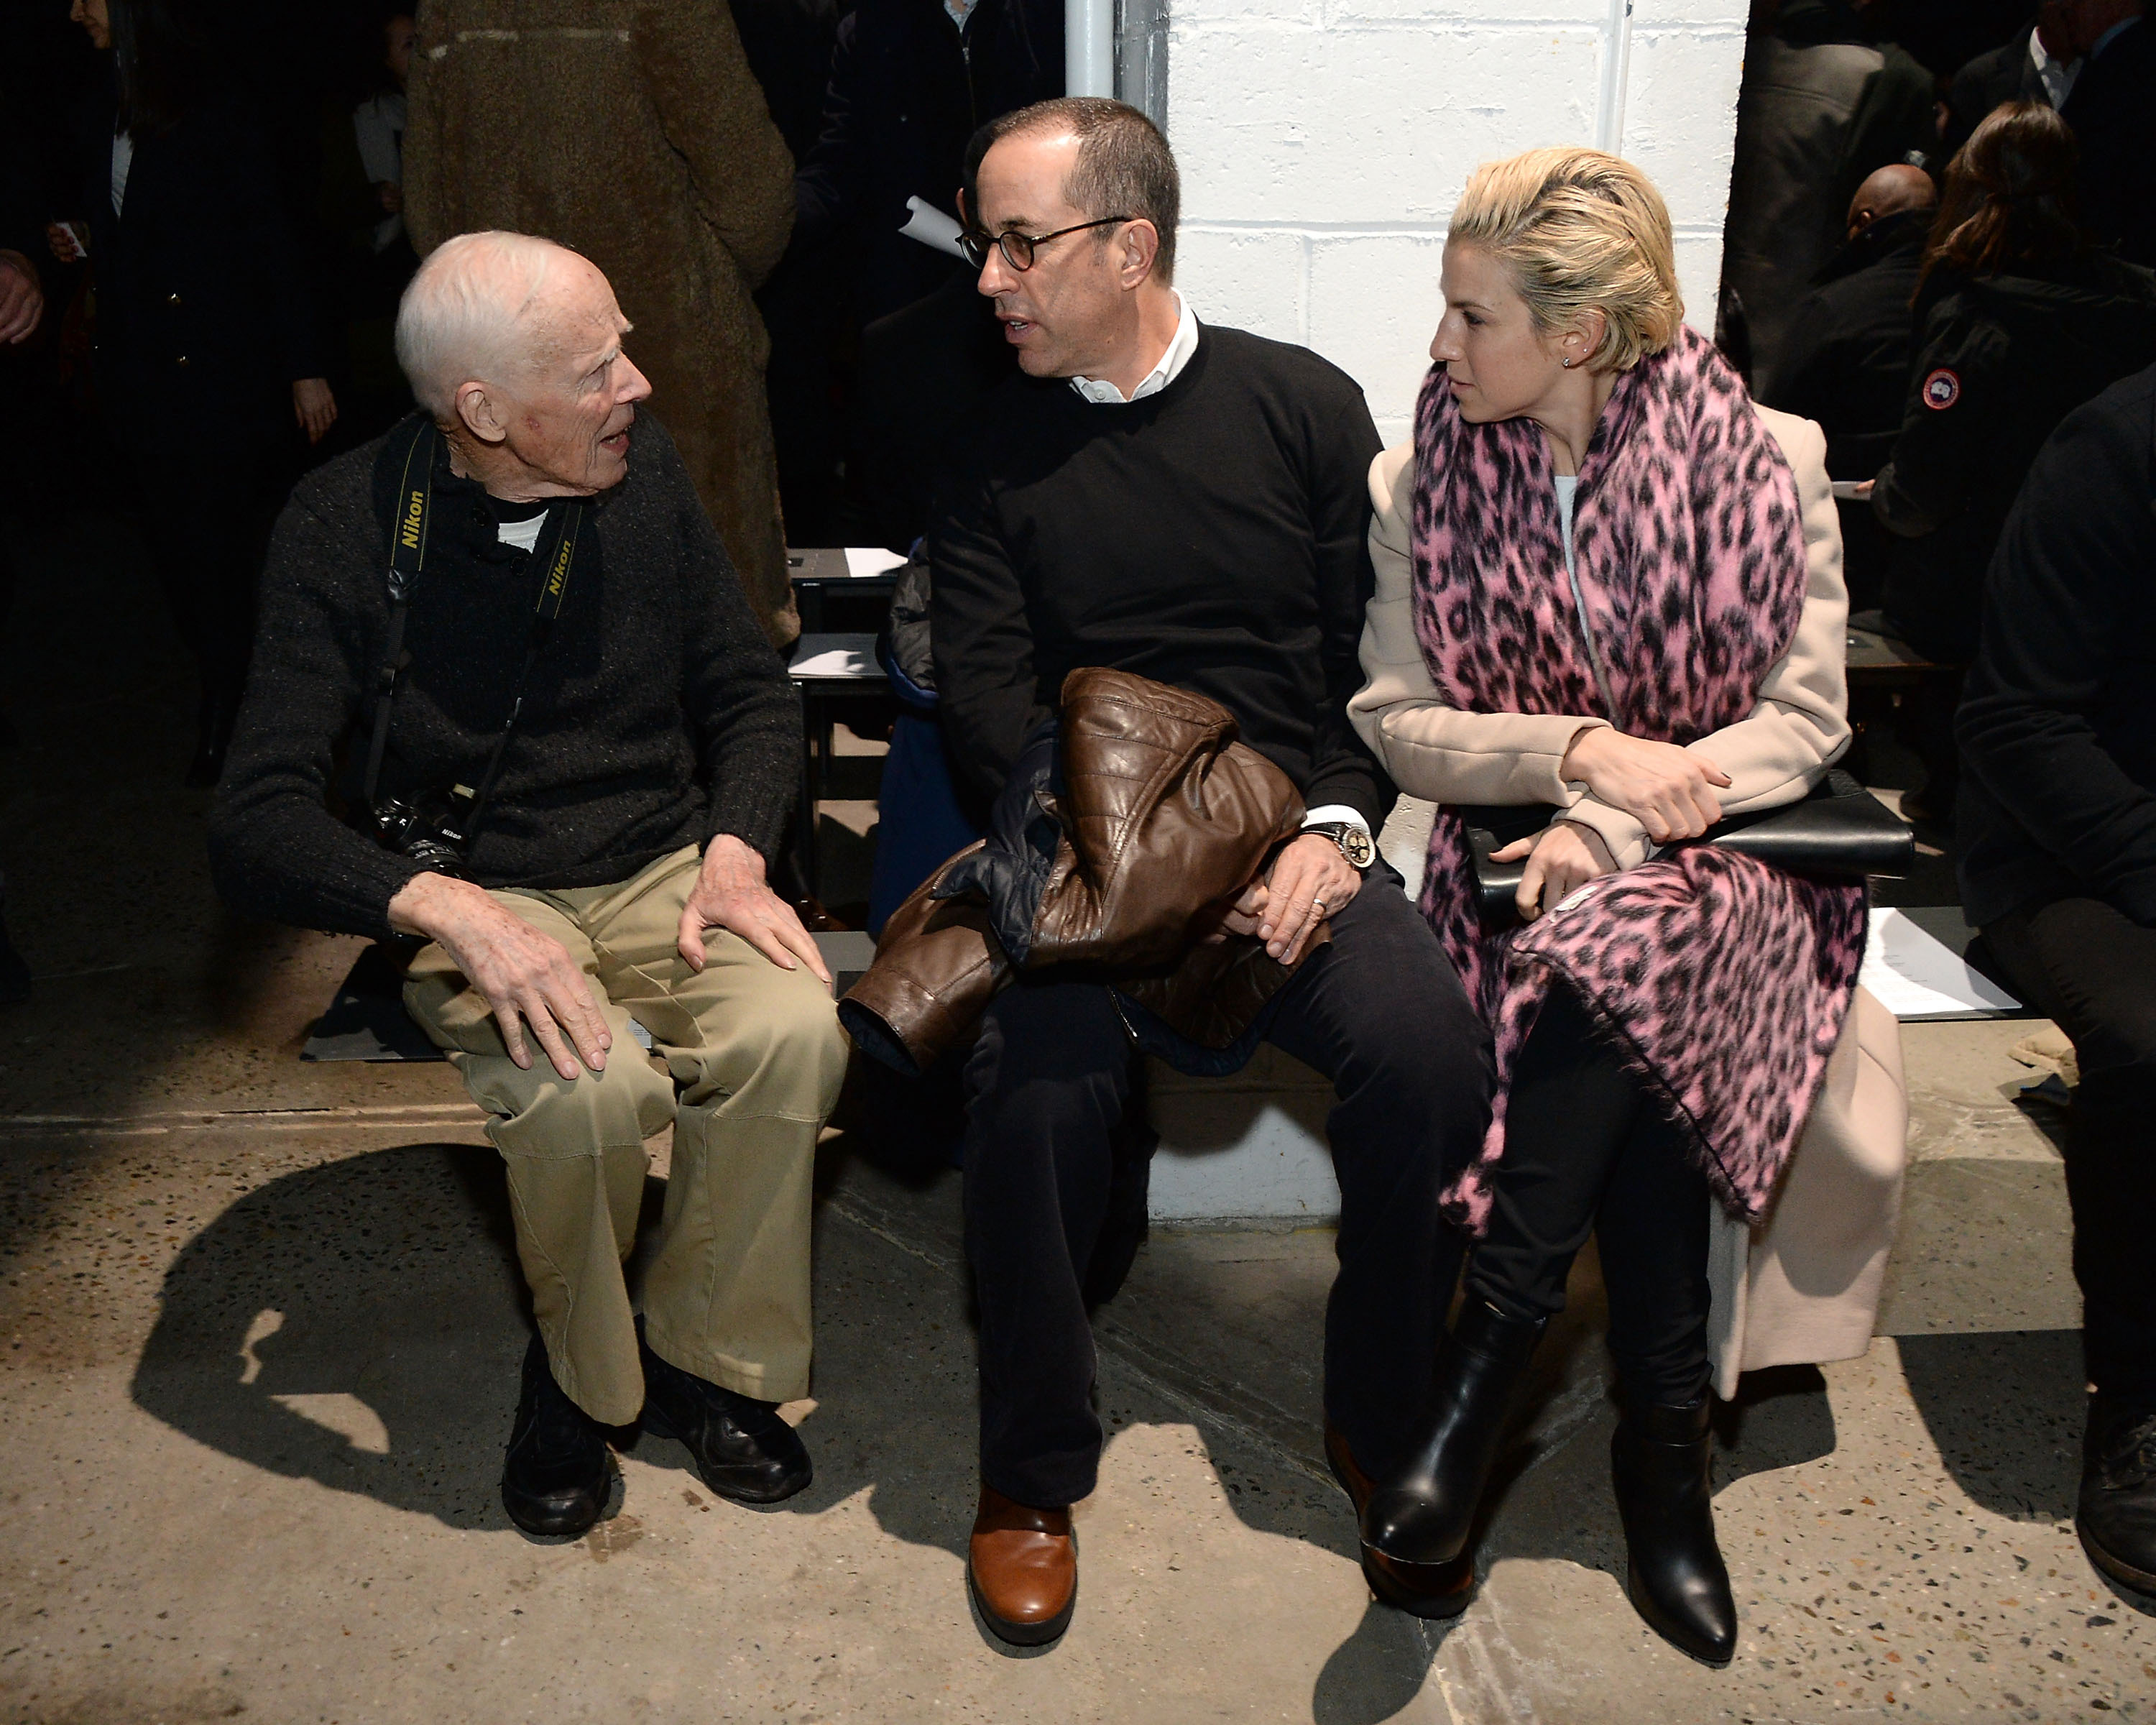 Bill Cunningham, Jerry Seinfeld and Jessica Seinfeld attend the Narciso Rodriguez fashion show during Mercedes-Benz Fashion Week Fall 2015 at SIR Stage37 in New York City on Feb. 17, 2015.